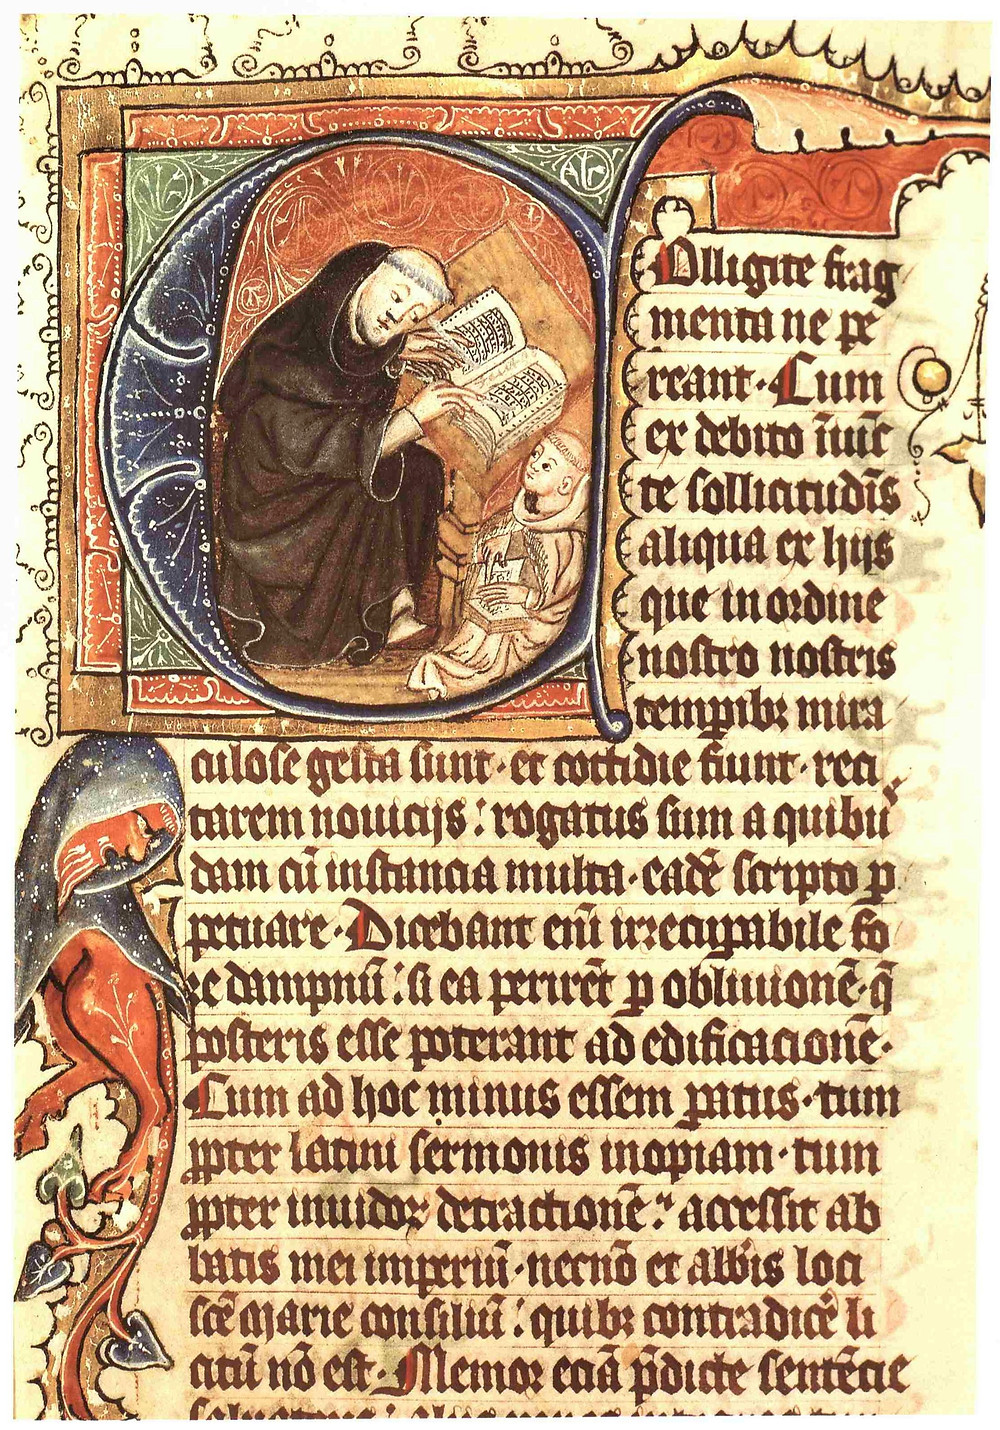 The first page of a copy of Caesarius of Heisterbach's Dialogus miraculorum, written in the mid-fourteenth century in the Rhineland and featuring a depiction of the author in the initial capital (Düsseldorf, Universitäts-und Landesbibliothek, MS C 27, f.1r)